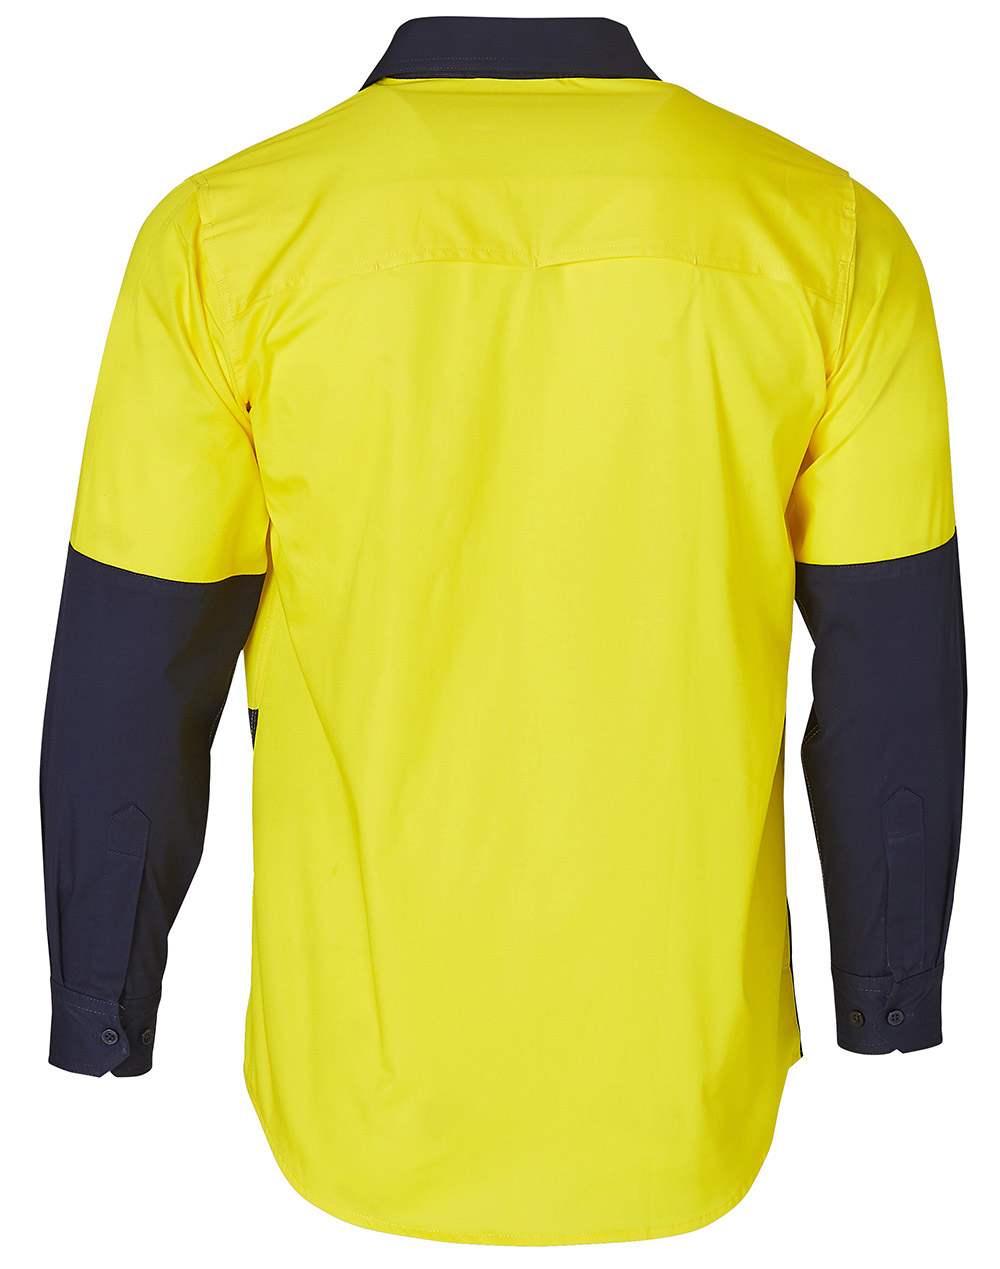 https://s3-ap-southeast-1.amazonaws.com/ws-imgs/WORKWEAR/SW58_YellowNavy_Back.jpg